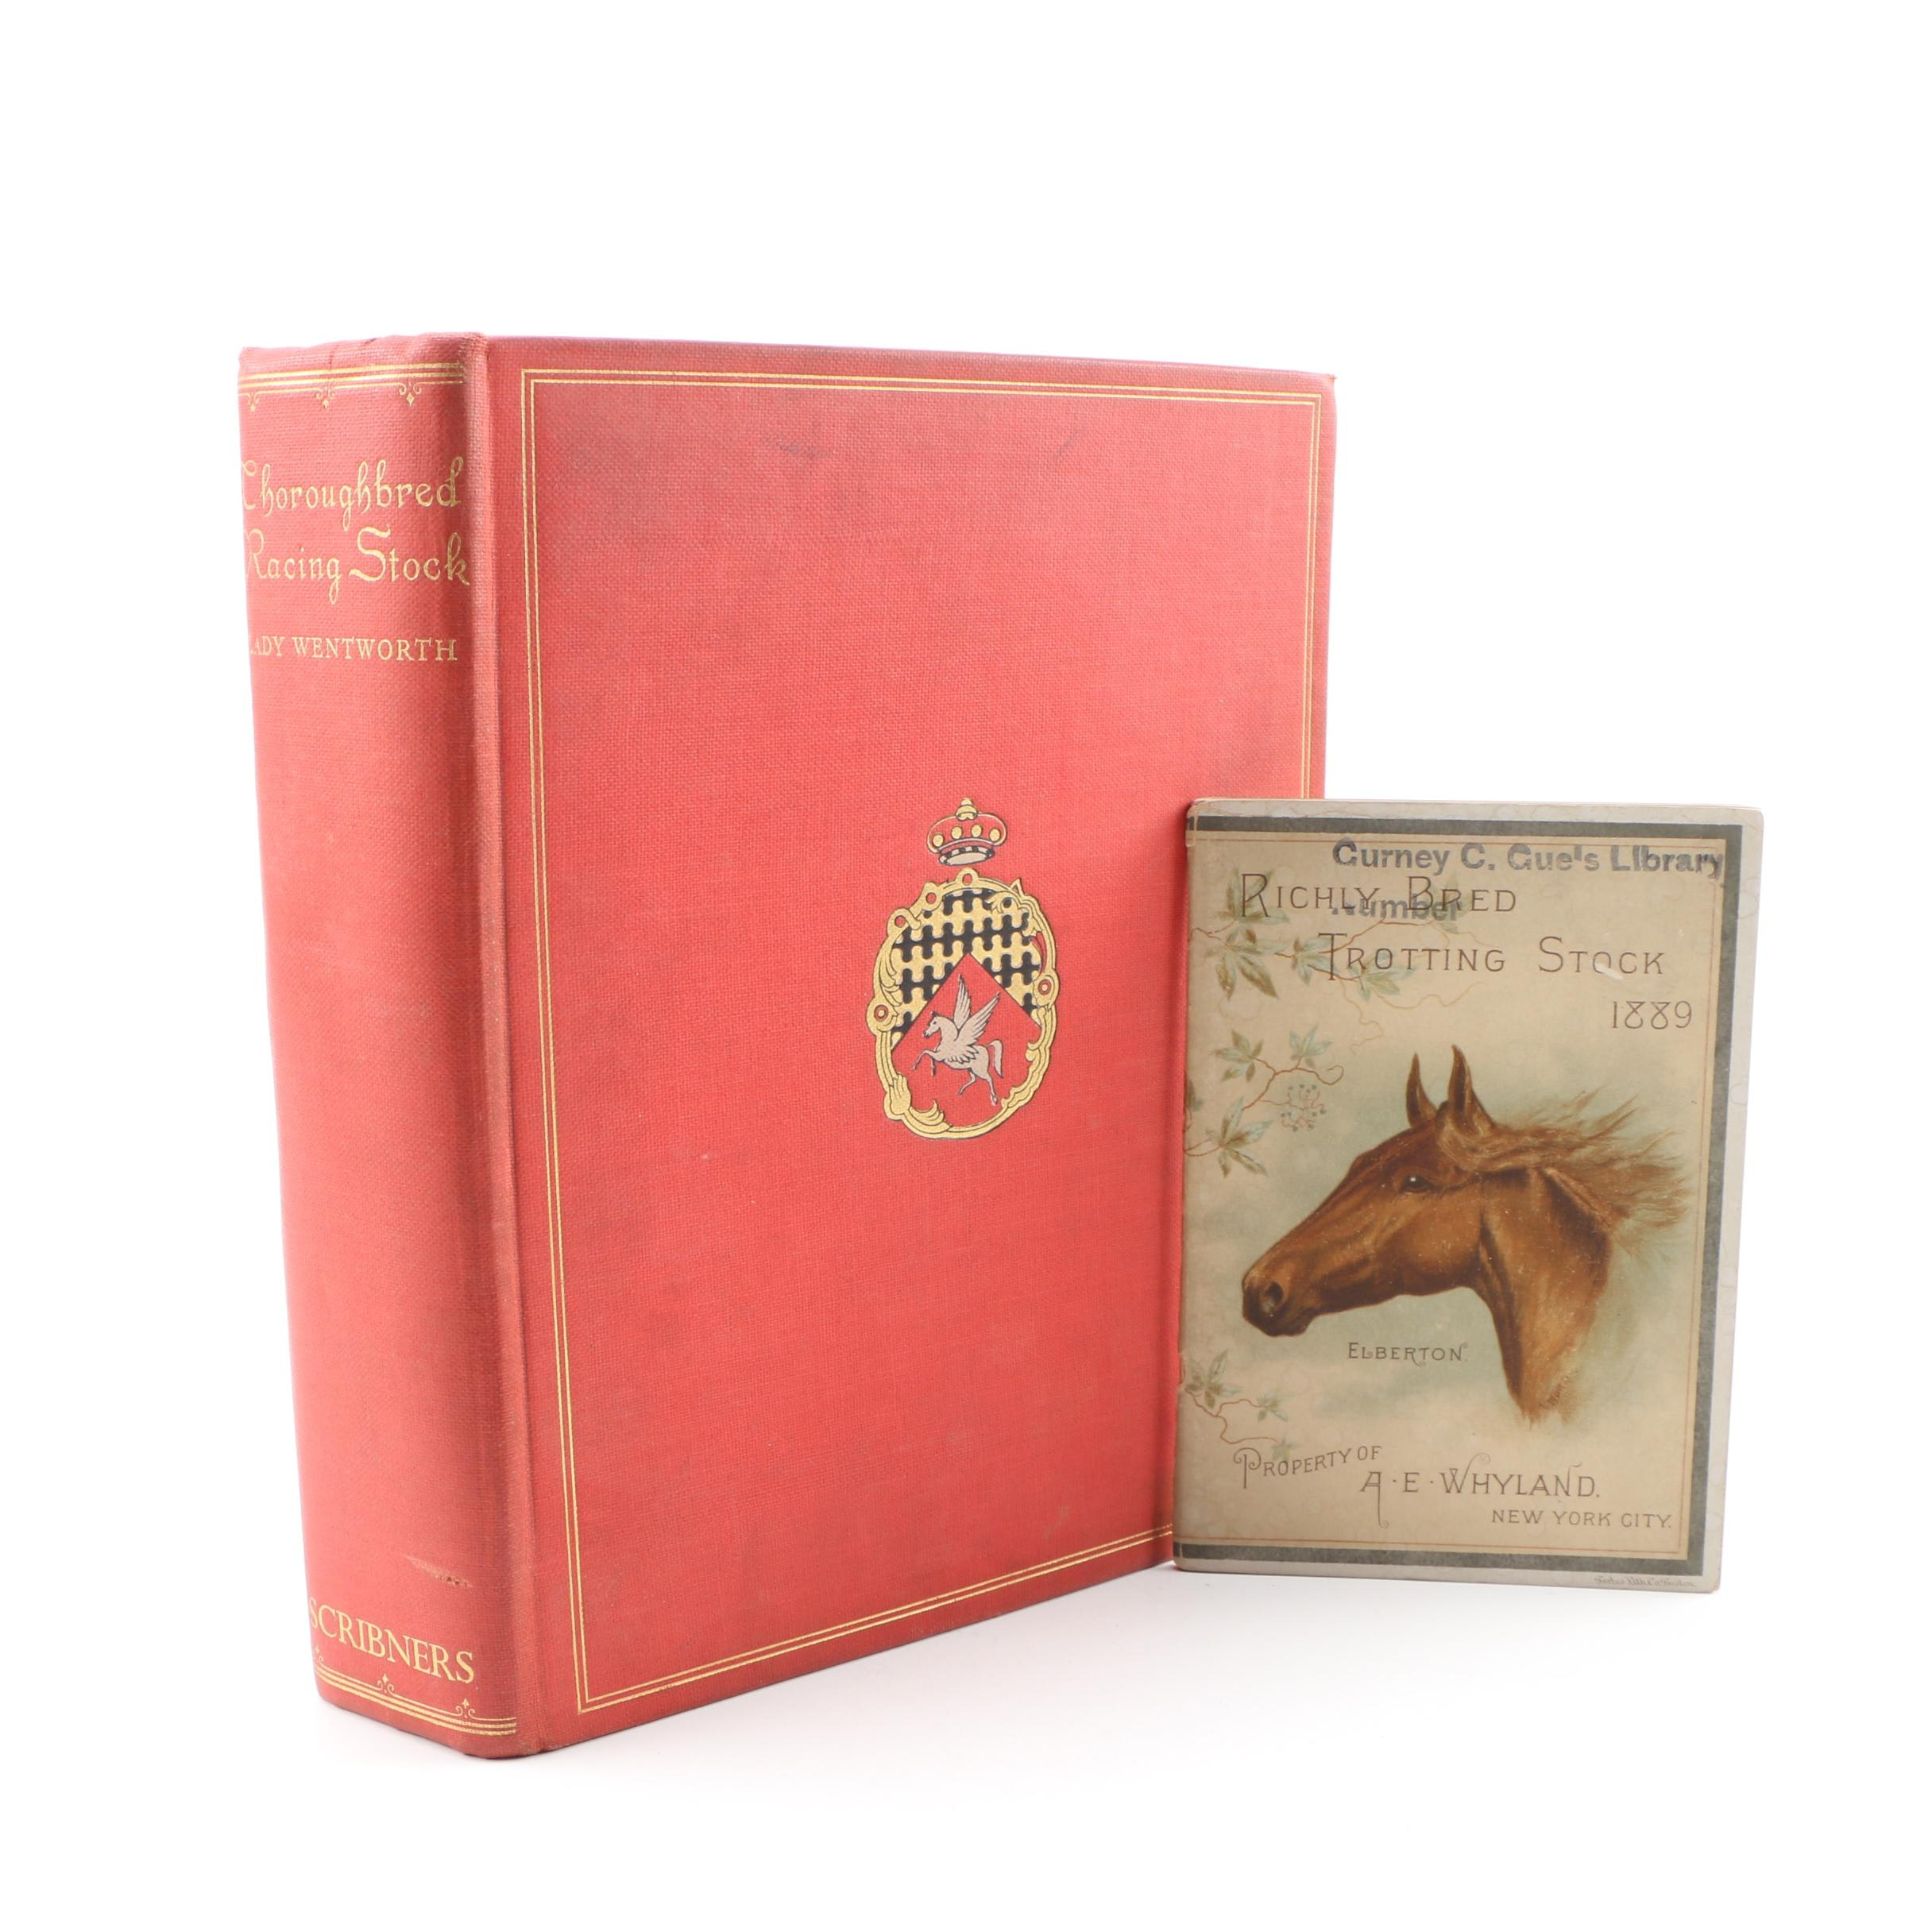 """""""Thoroughbred Racing Stock and Its Ancestors"""" by Lady Wentworth, 1938"""